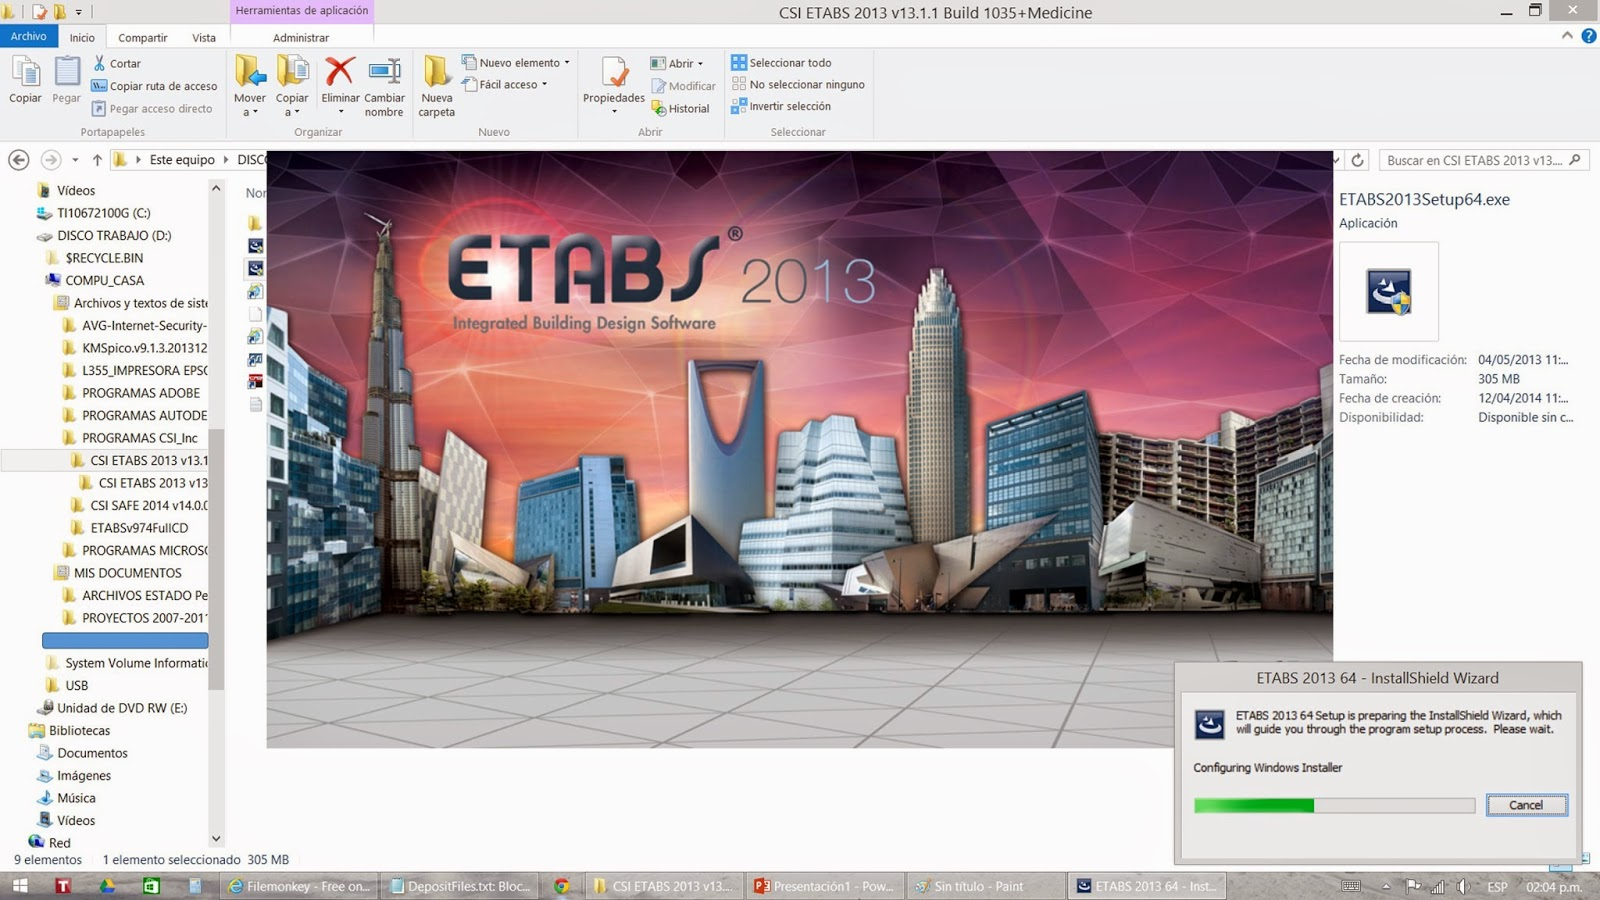 etabs 2013 free download full version with crack